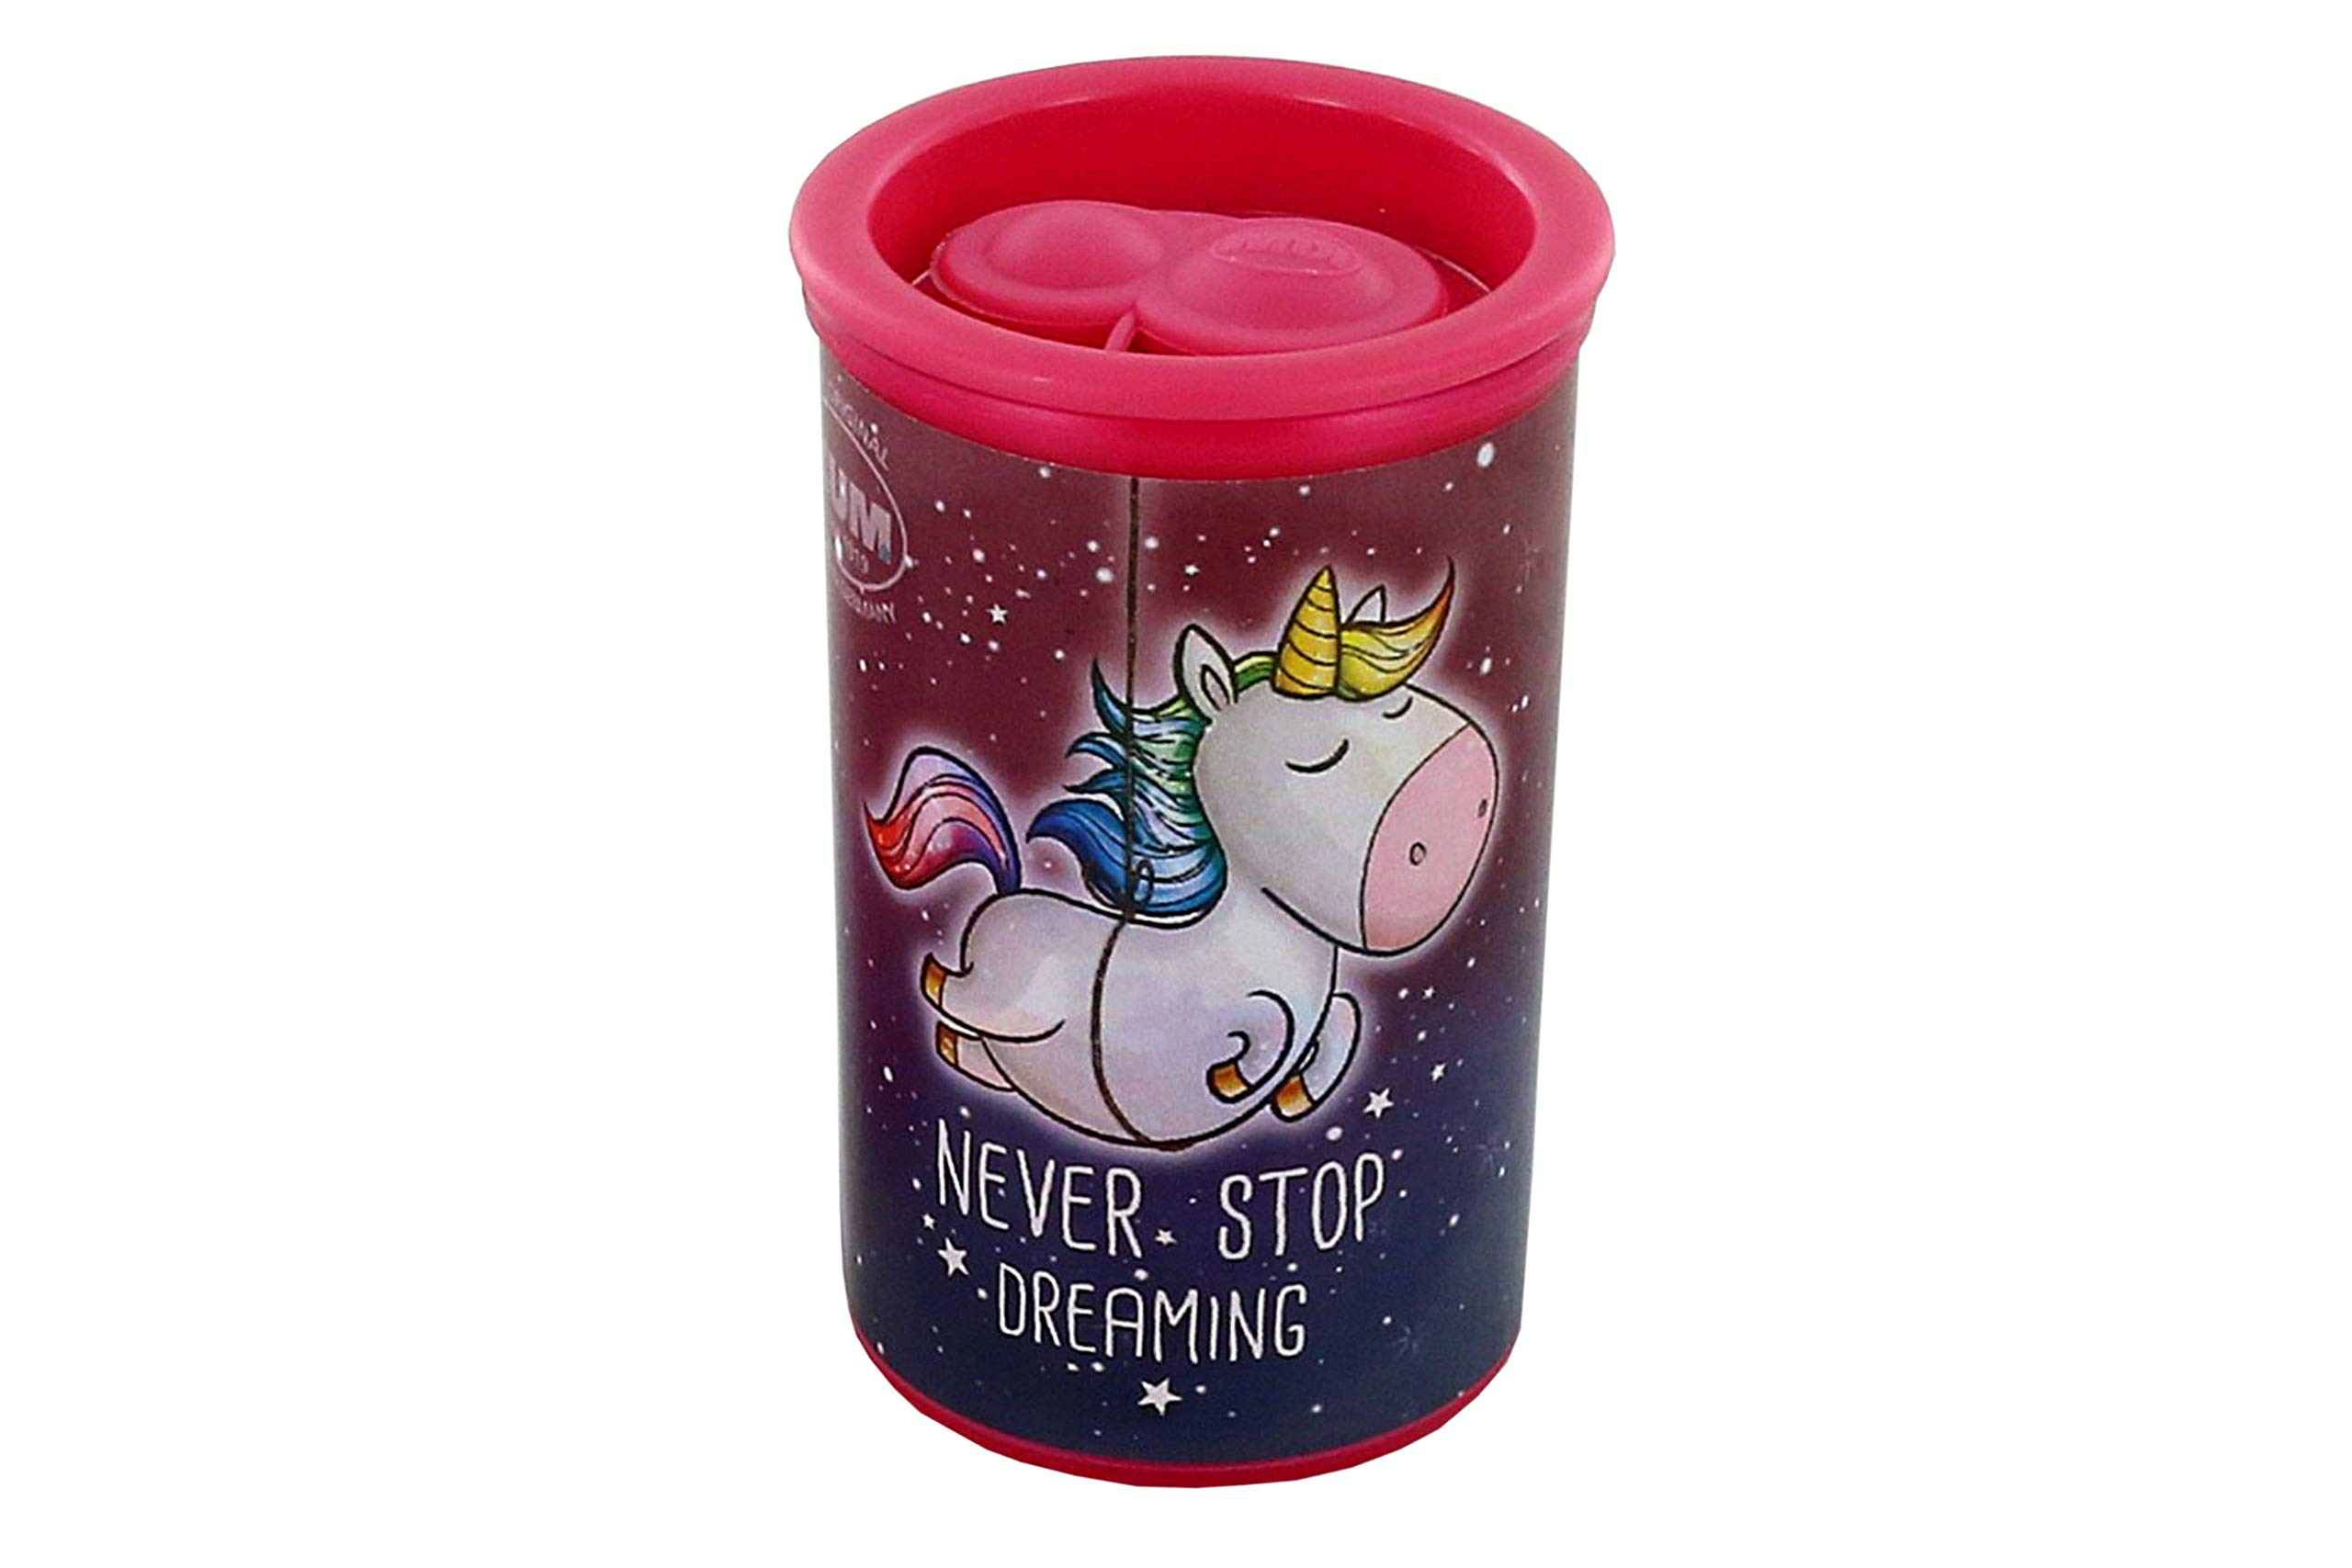 KUM AZ361.02.19 - Double Container Sharpener 1870KM2 Magnesium Unicorn Motif by Kum